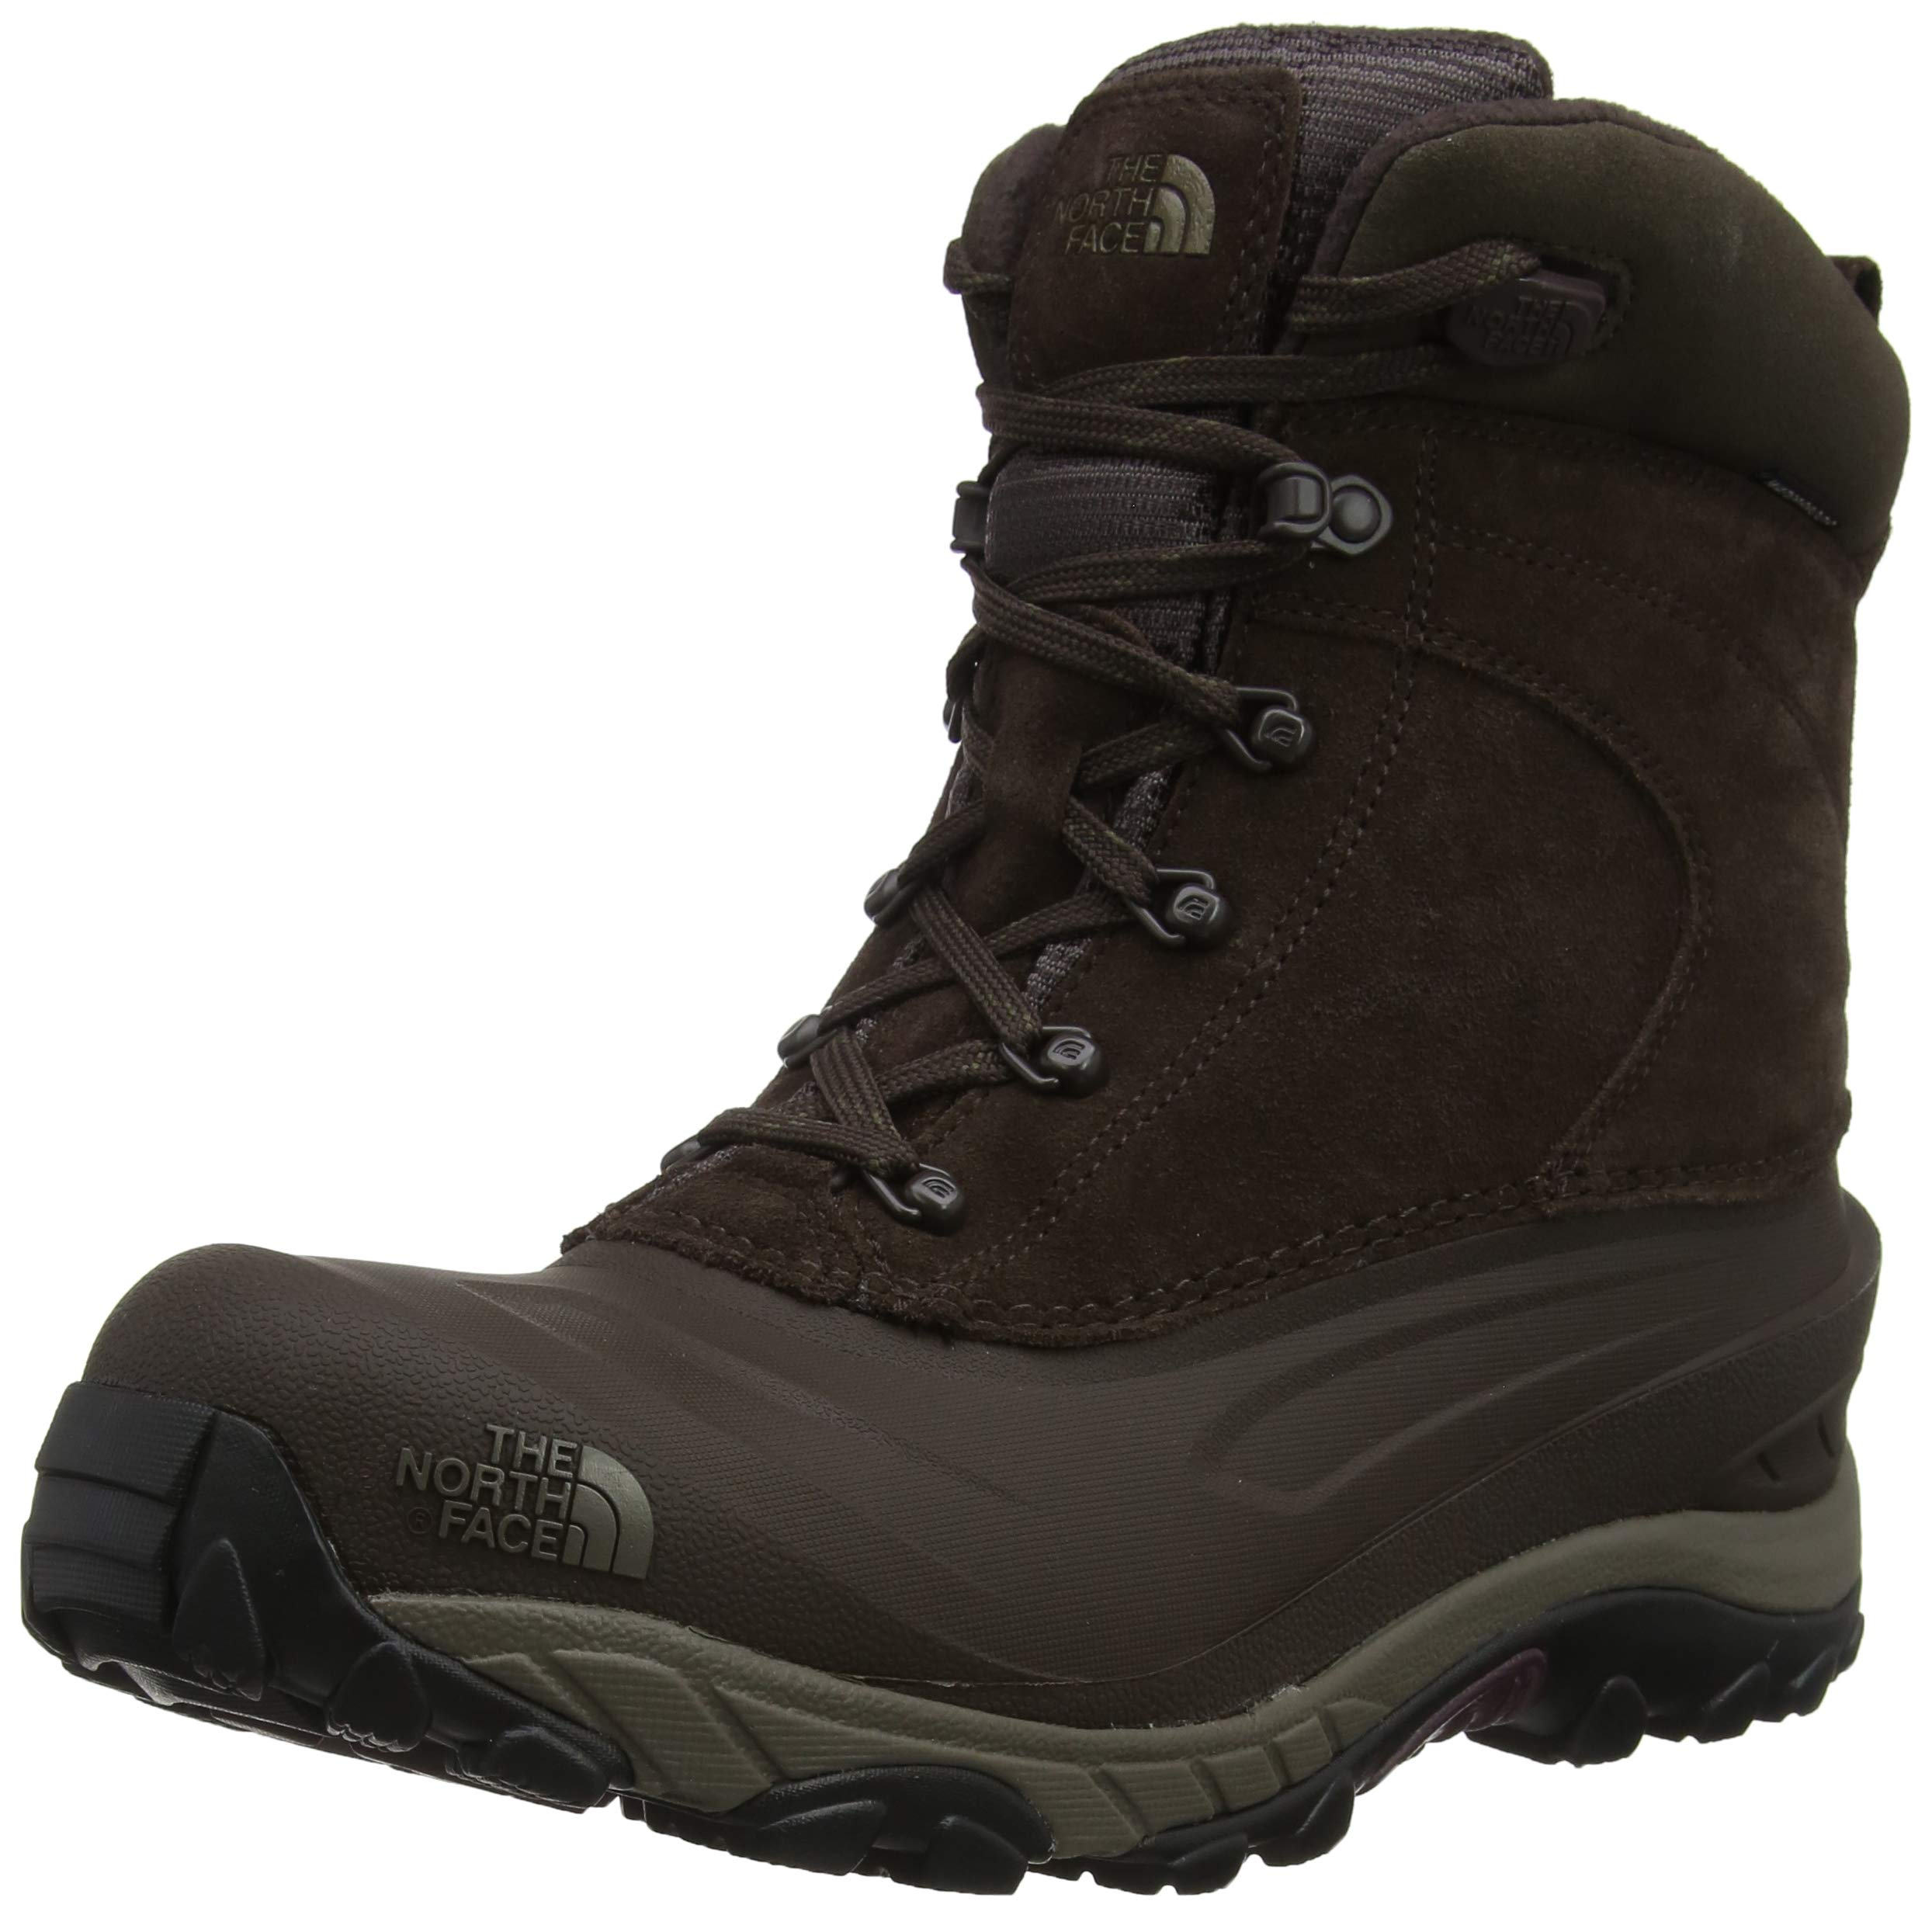 81nL9eaLisL - THE NORTH FACE Men's Chilkat Iii High Rise Hiking Boots